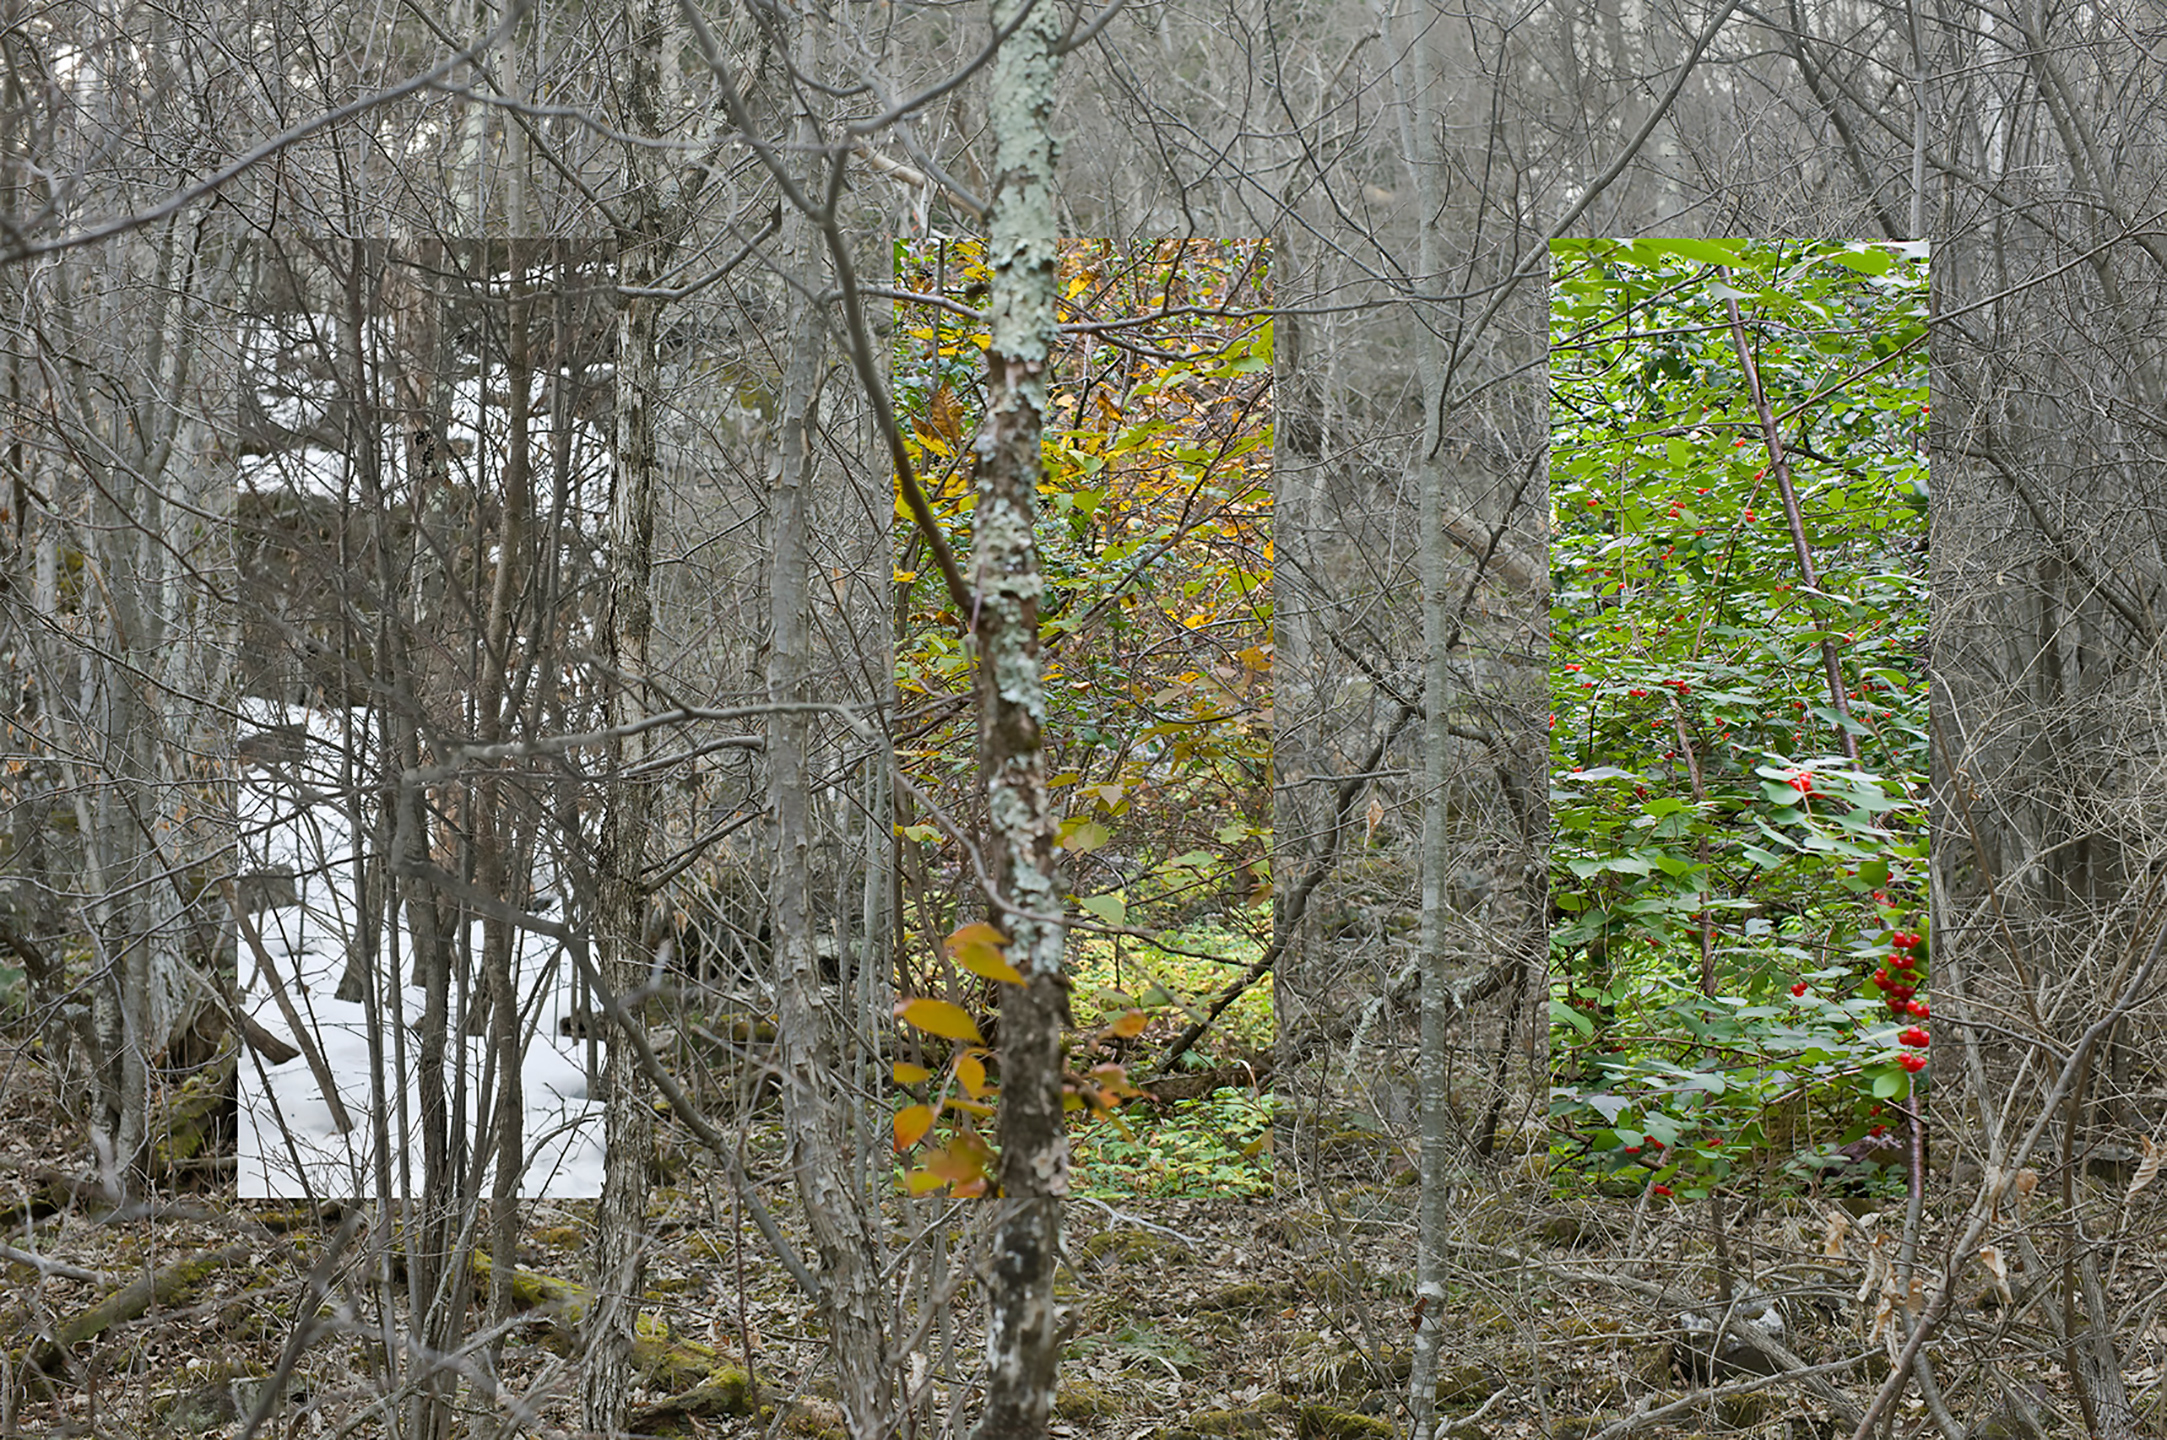 """Time composite"" looking through thicket in the woods."